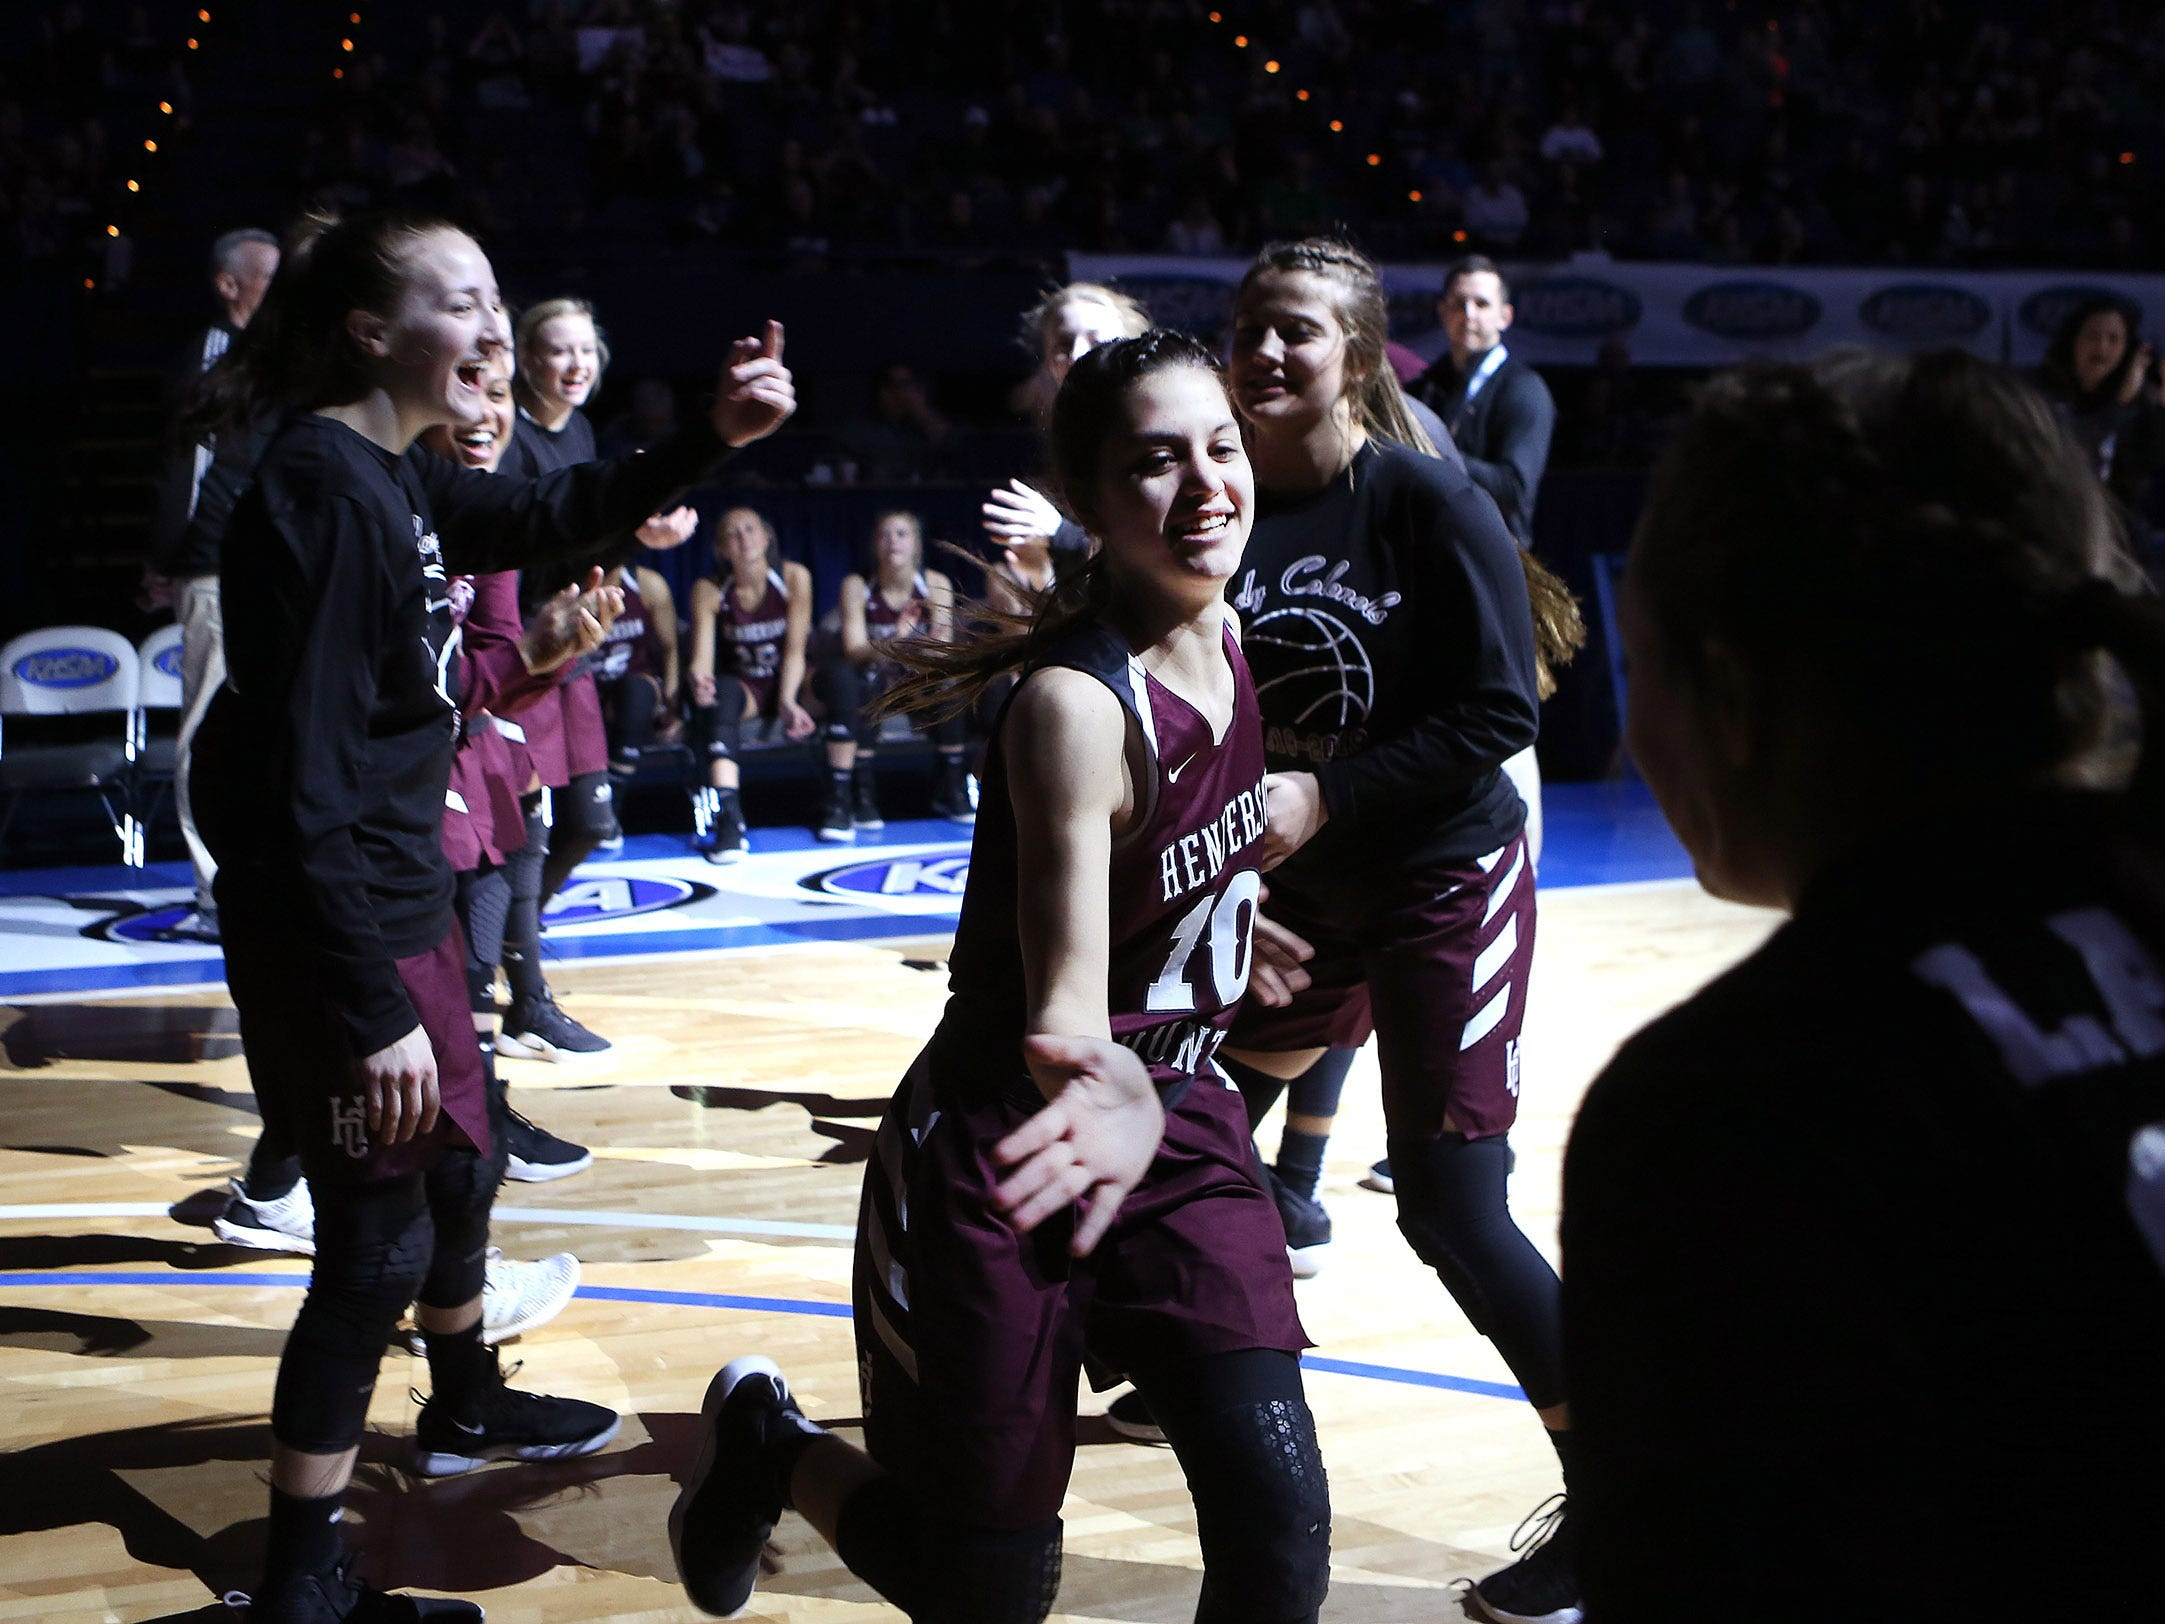 Henderson County's Katie Rideout slapped hands with teammates during introduction of starting lineups Friday against North Laurel in Game 8 of the KHSAA Girls' Sweet 16 at Rupp Arena in Lexington.